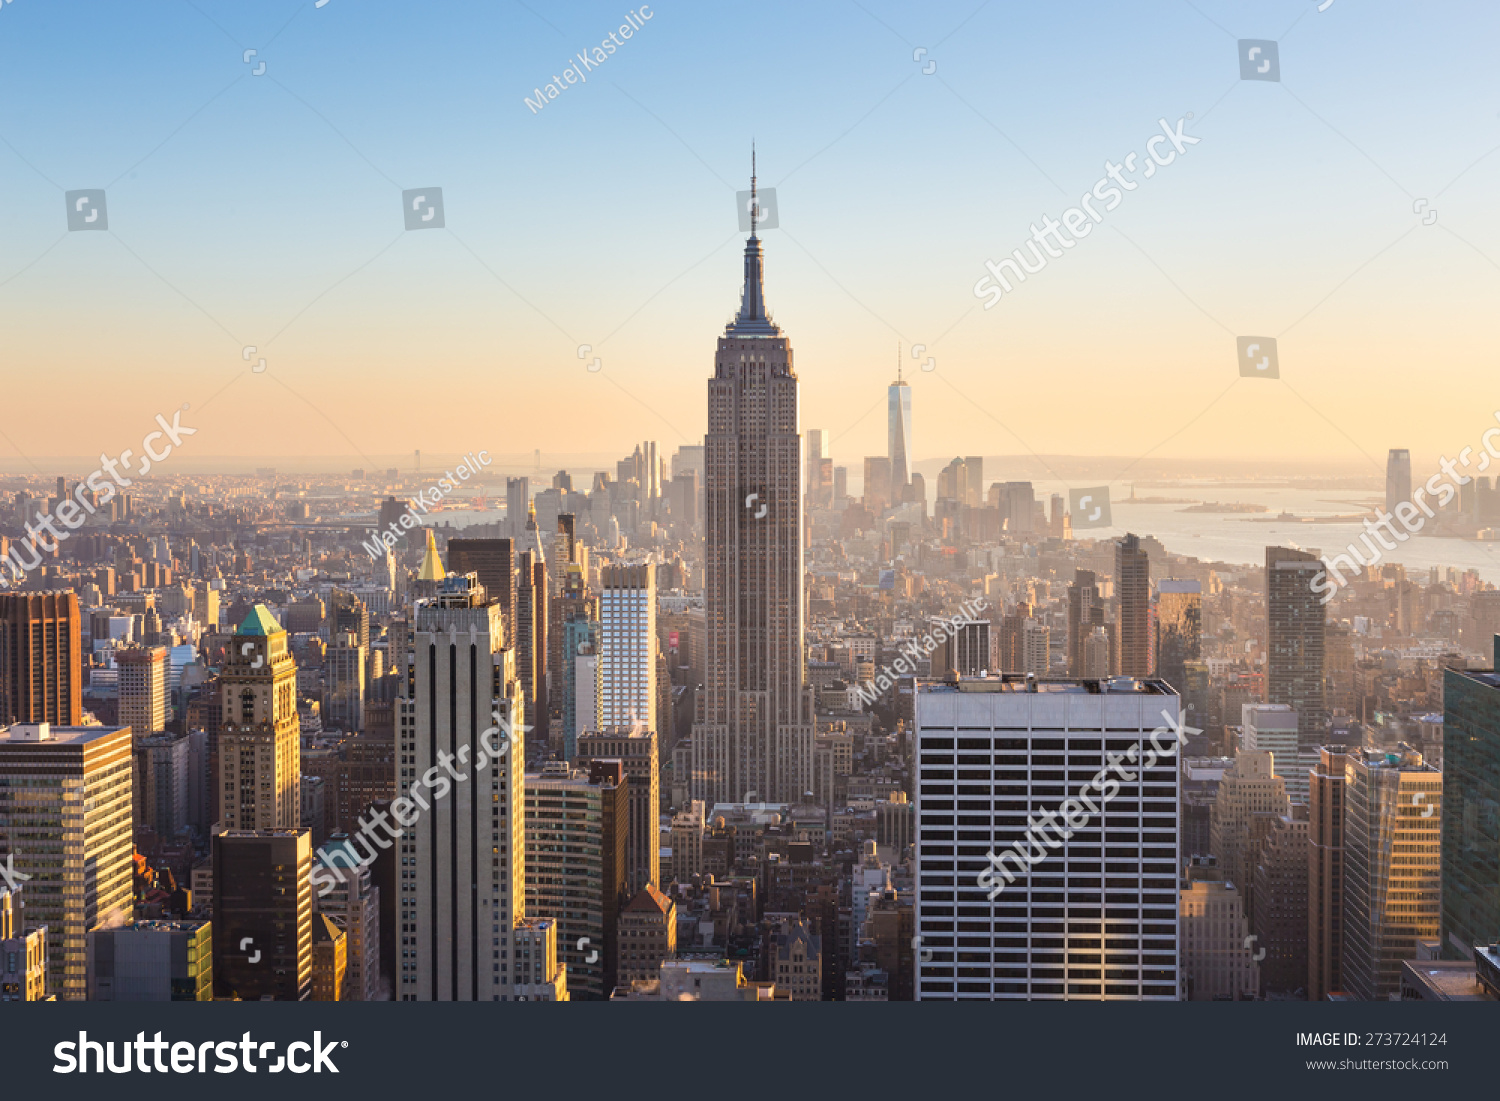 new york city manhattan downtown skyline stock photo. Black Bedroom Furniture Sets. Home Design Ideas